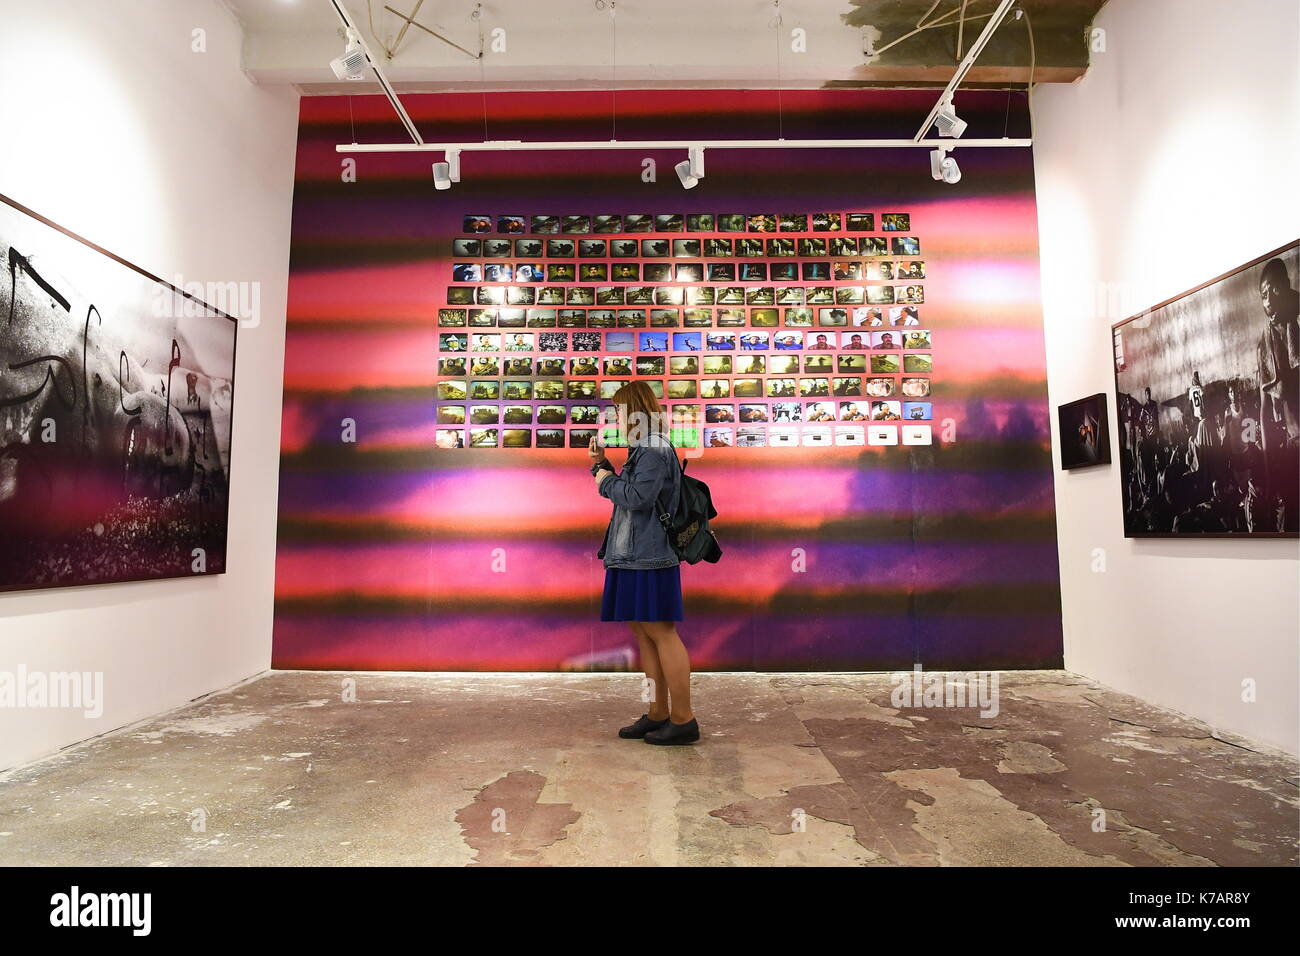 Yekaterinburg, Russia. 15th Sep, 2017. A visitor views showpieces on display at the 4th Ural Industrial Biennale: New Literacy exhibition of contemporary art in the building of the former Ural instrument-making plant. Credit: Donat Sorokin/TASS/Alamy Live News - Stock Image